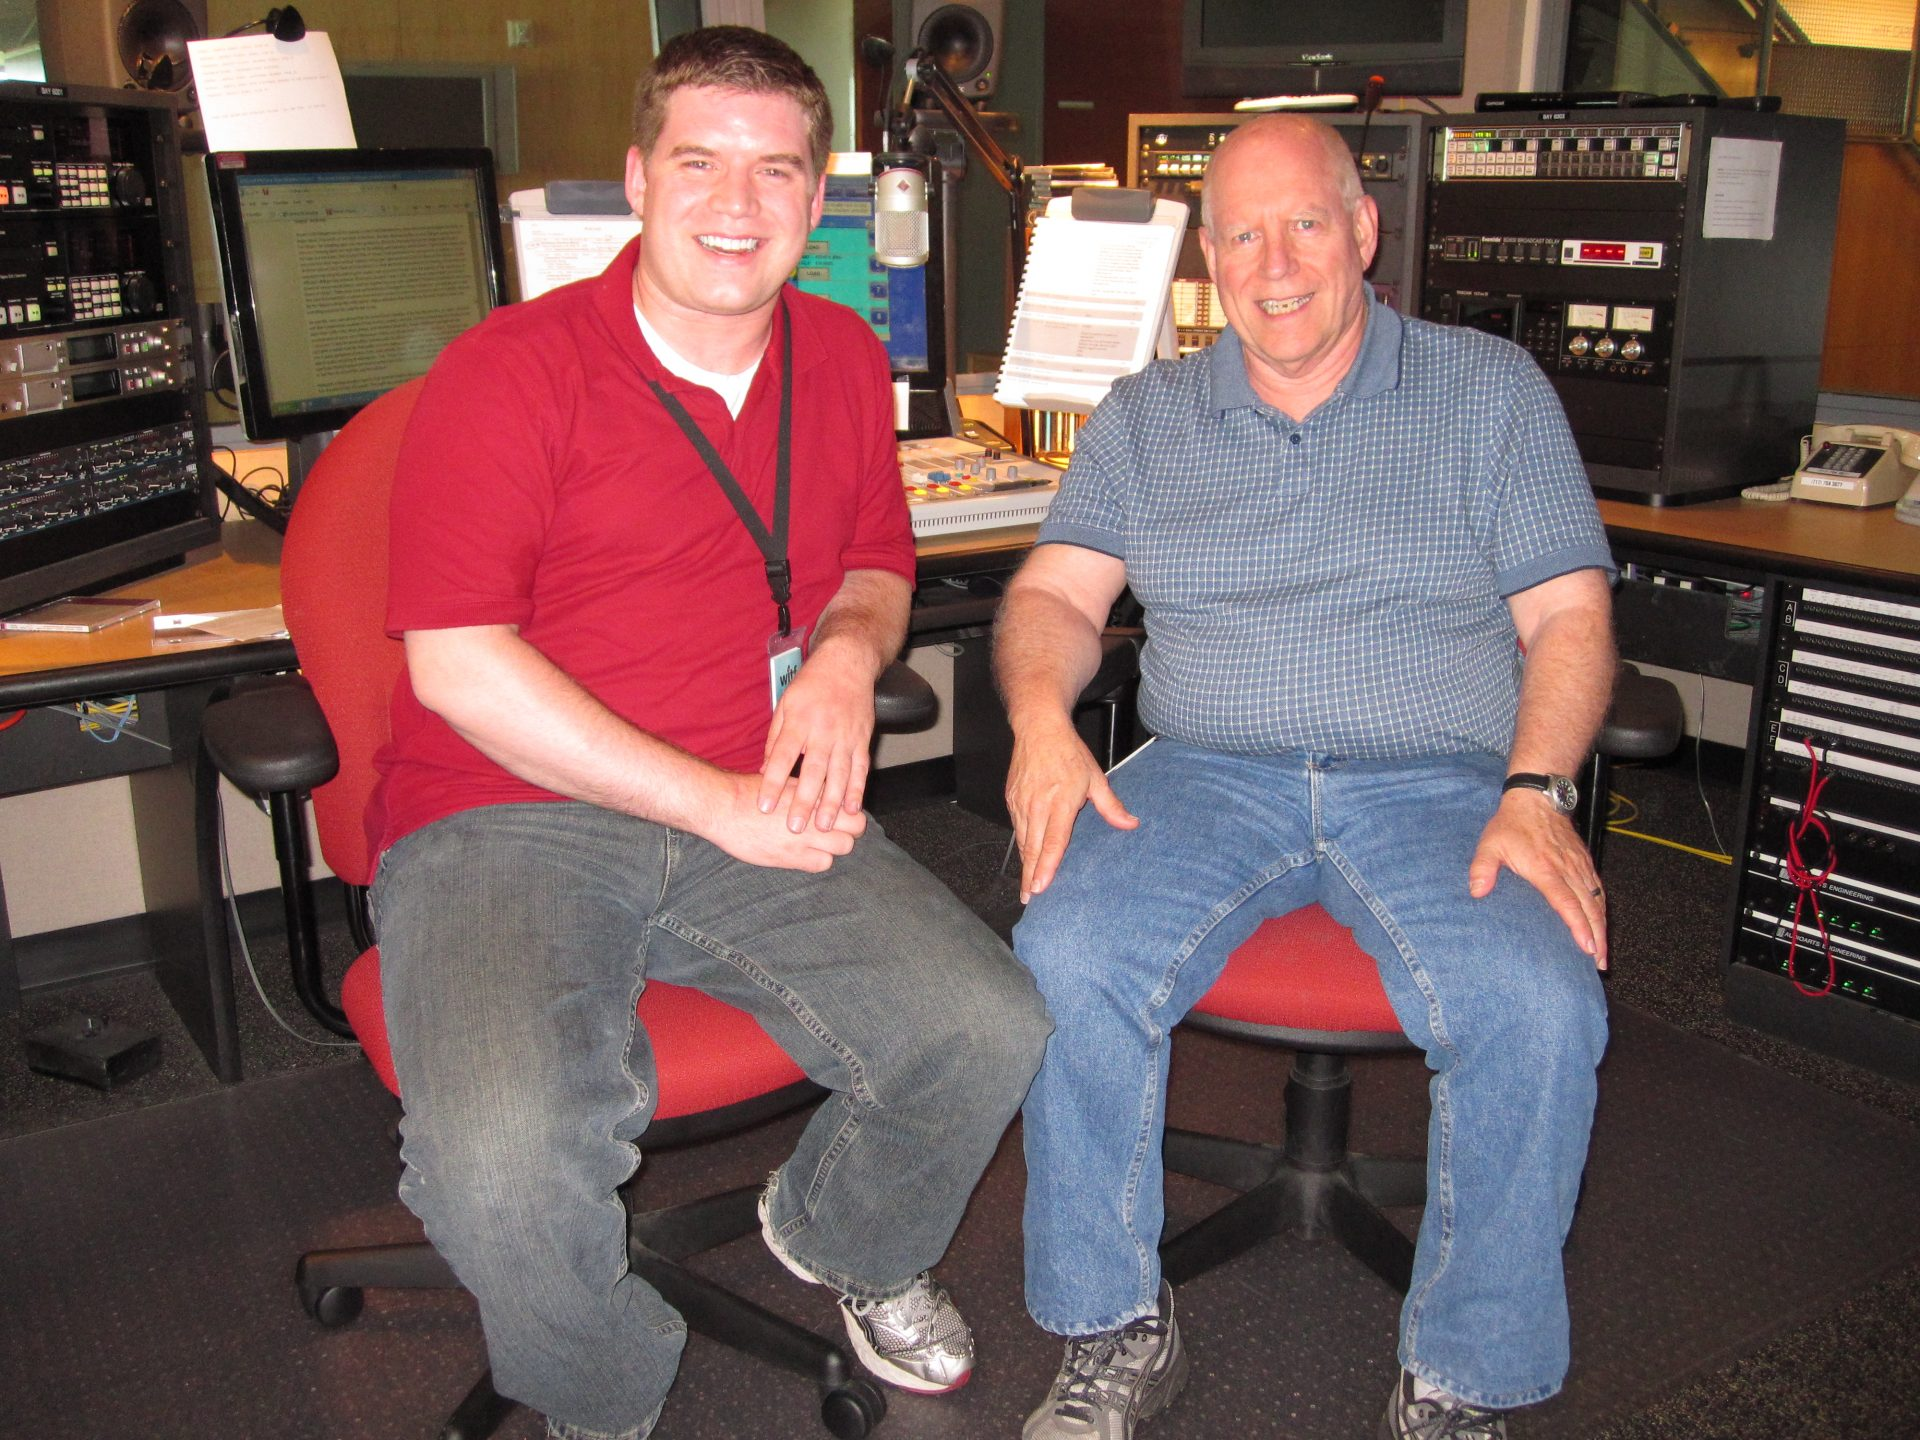 Craig Layne and his father, John Layne, together in the WITF master control room.